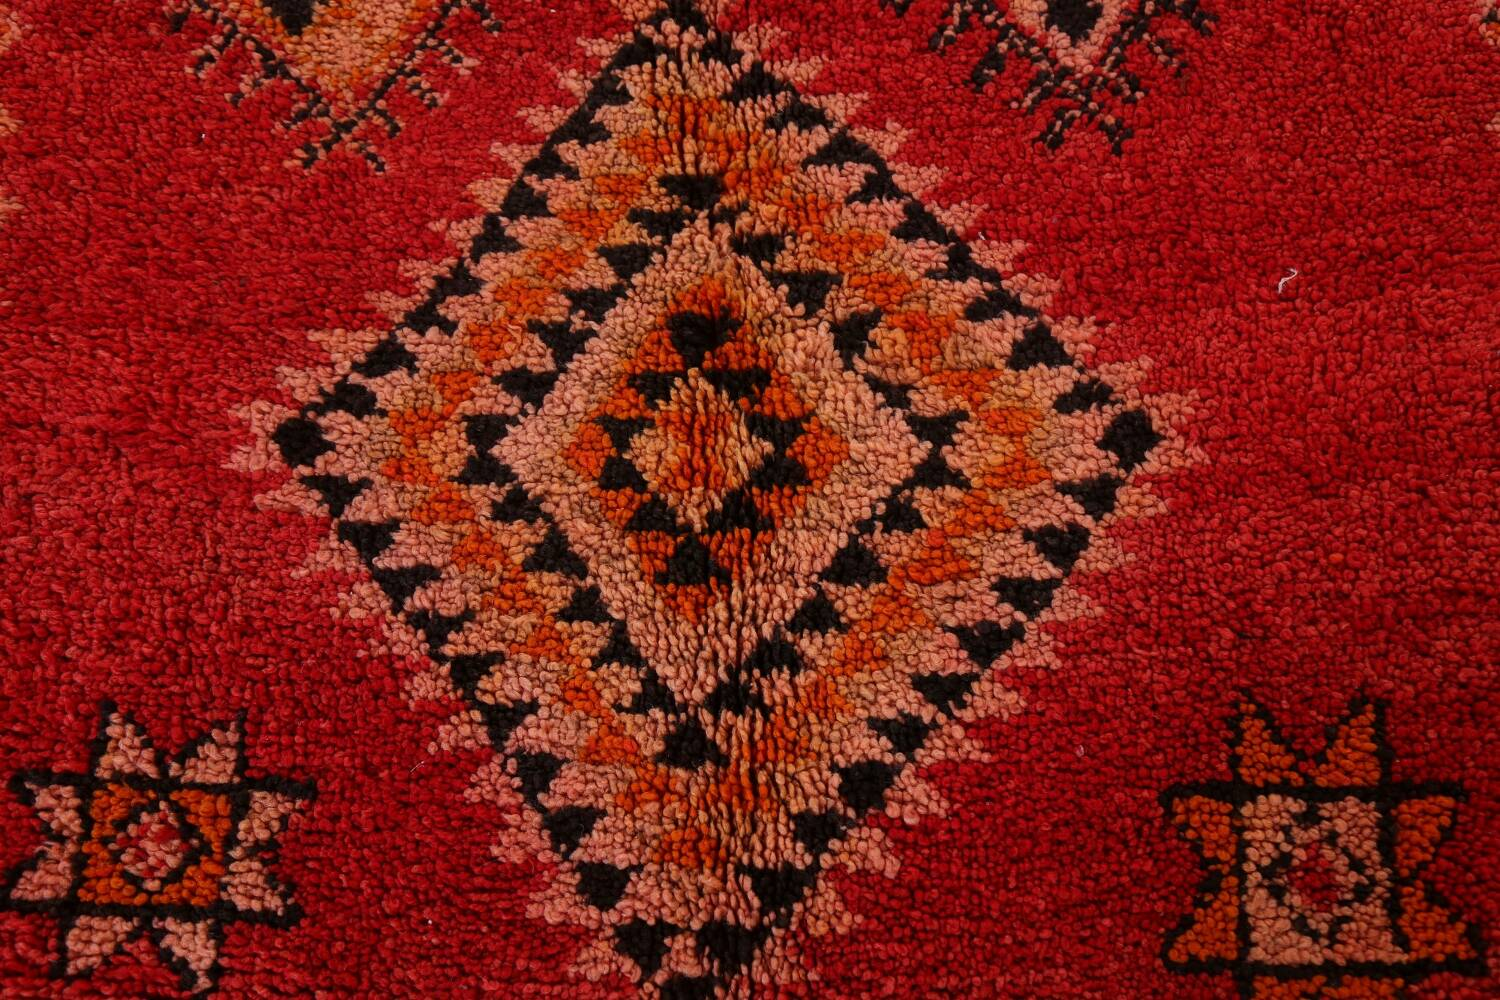 Red Moroccan Berber Area Rug 6x11 image 9